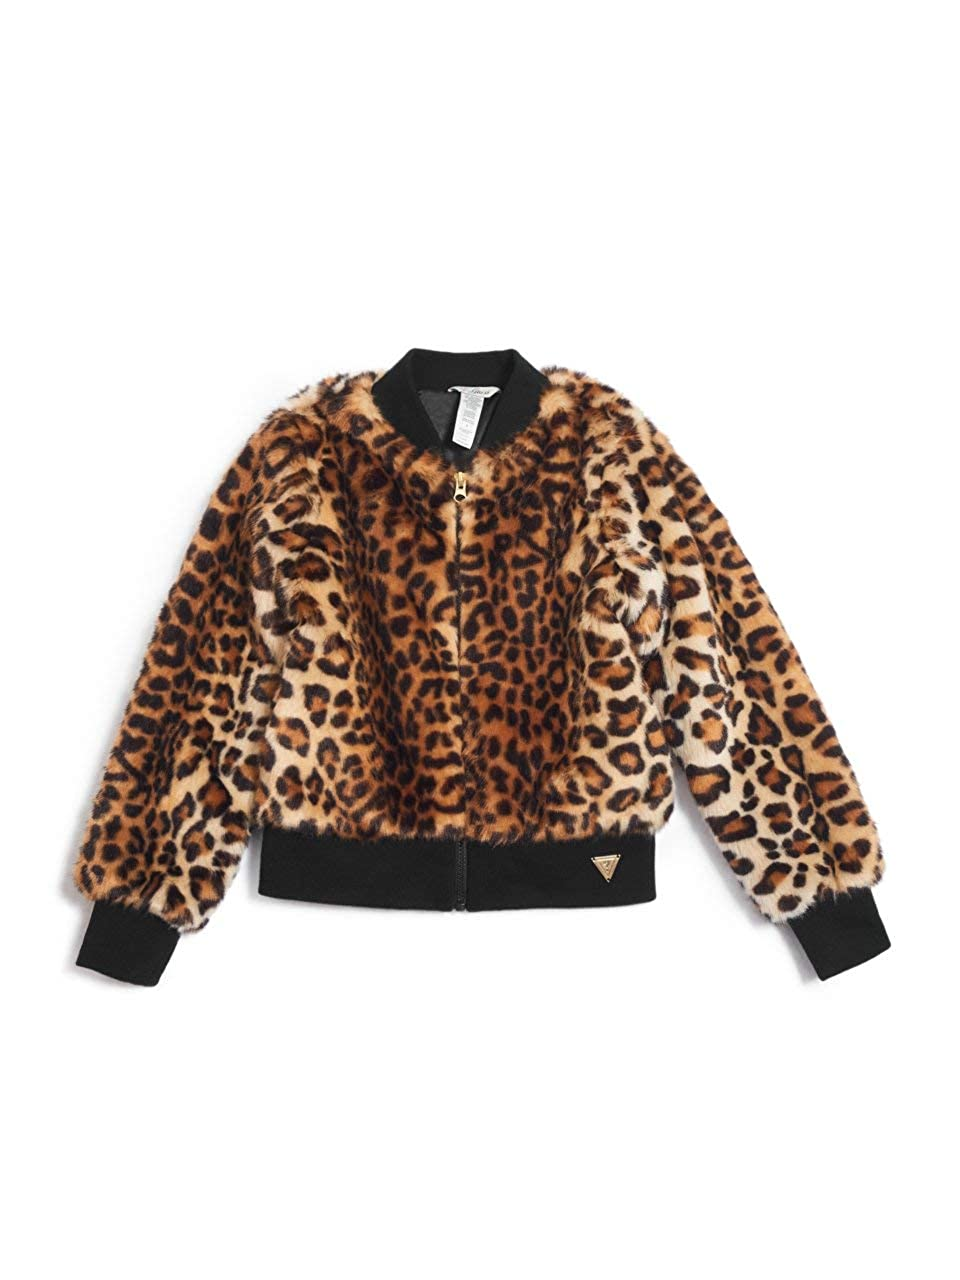 7-16 GUESS Factory Kids Girls Janice Leopard Bomber Jacket